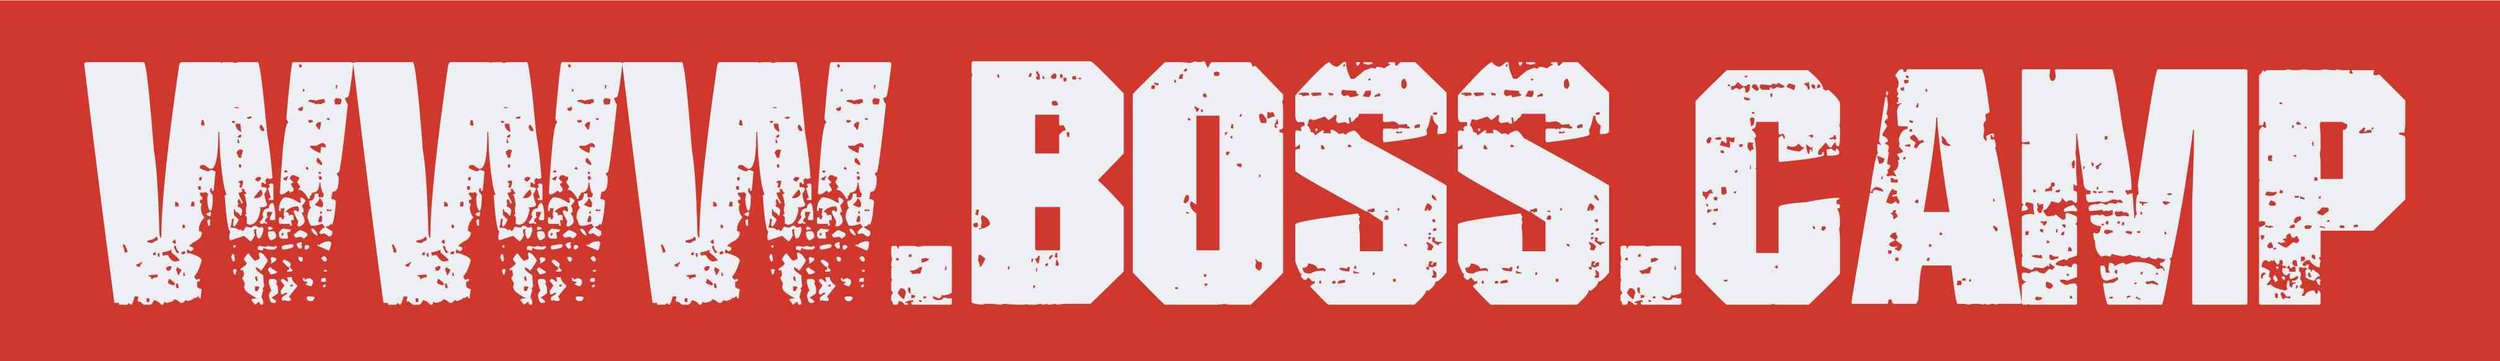 www.boss.camp will show you what they never taught you in school about managing staff Jpeg